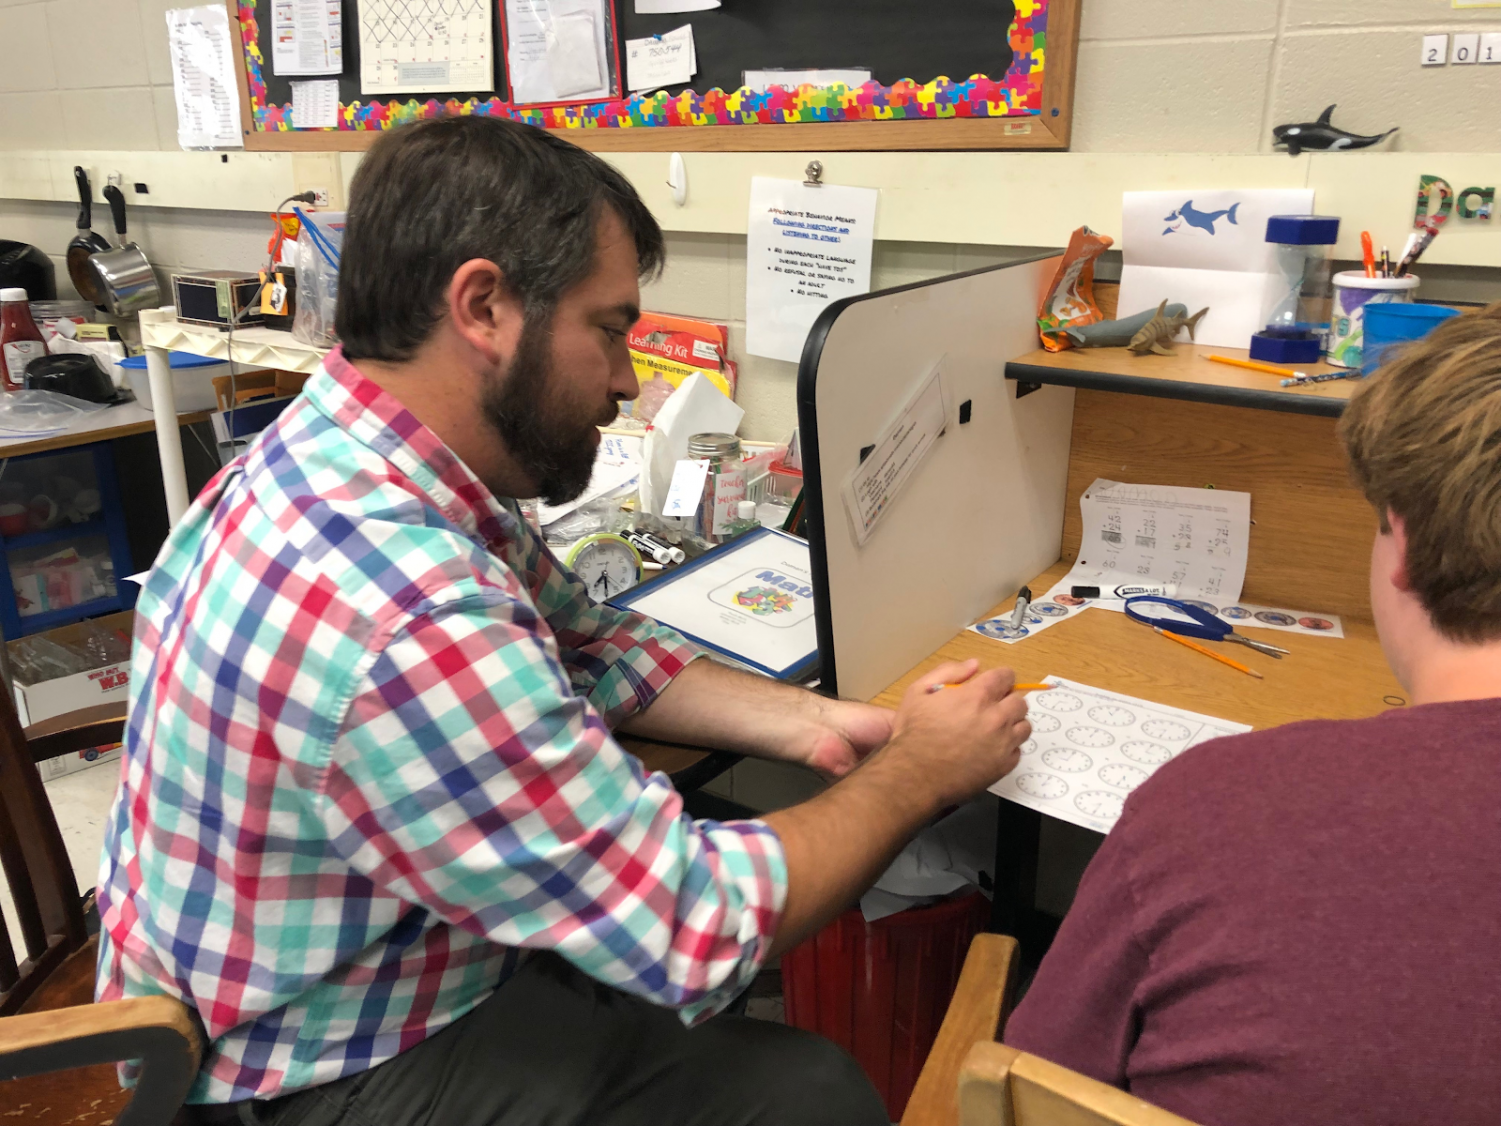 Here is Mr. Swartz helping his student with a worksheet.